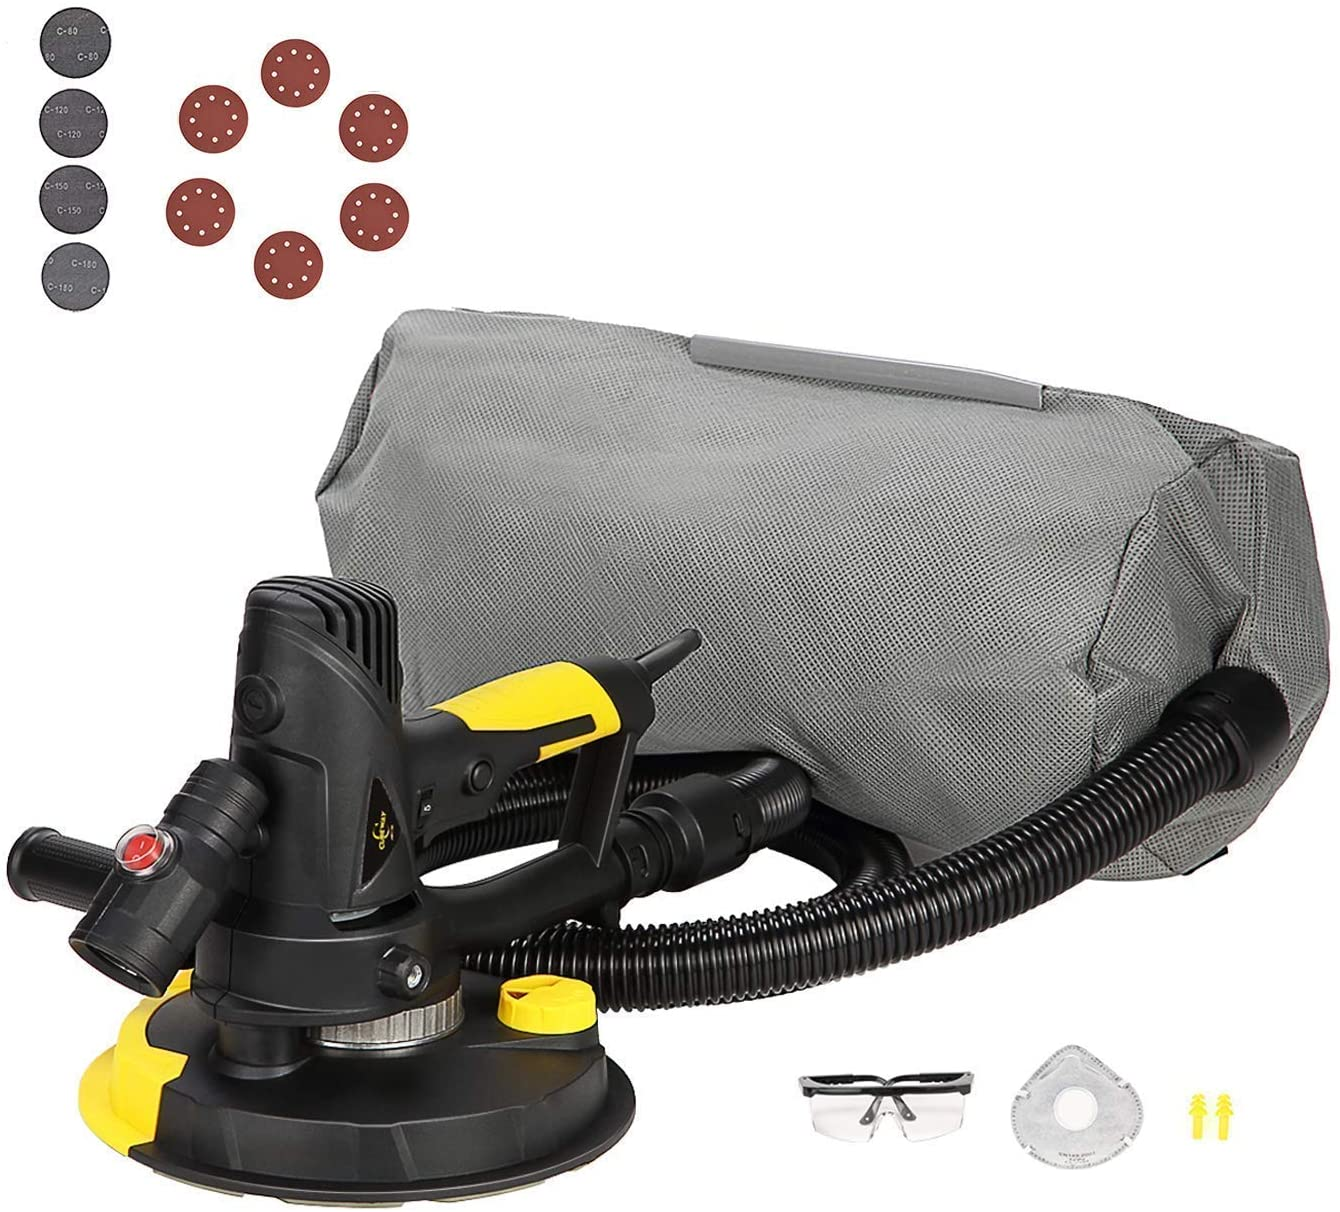 Electric Drywall Sander with Vacuum, Variable Speed and 26FT Power Cord, Drywall Sanding Machine with Extra Mesh Sanding Discs and Safety Kit, CUBEWAY